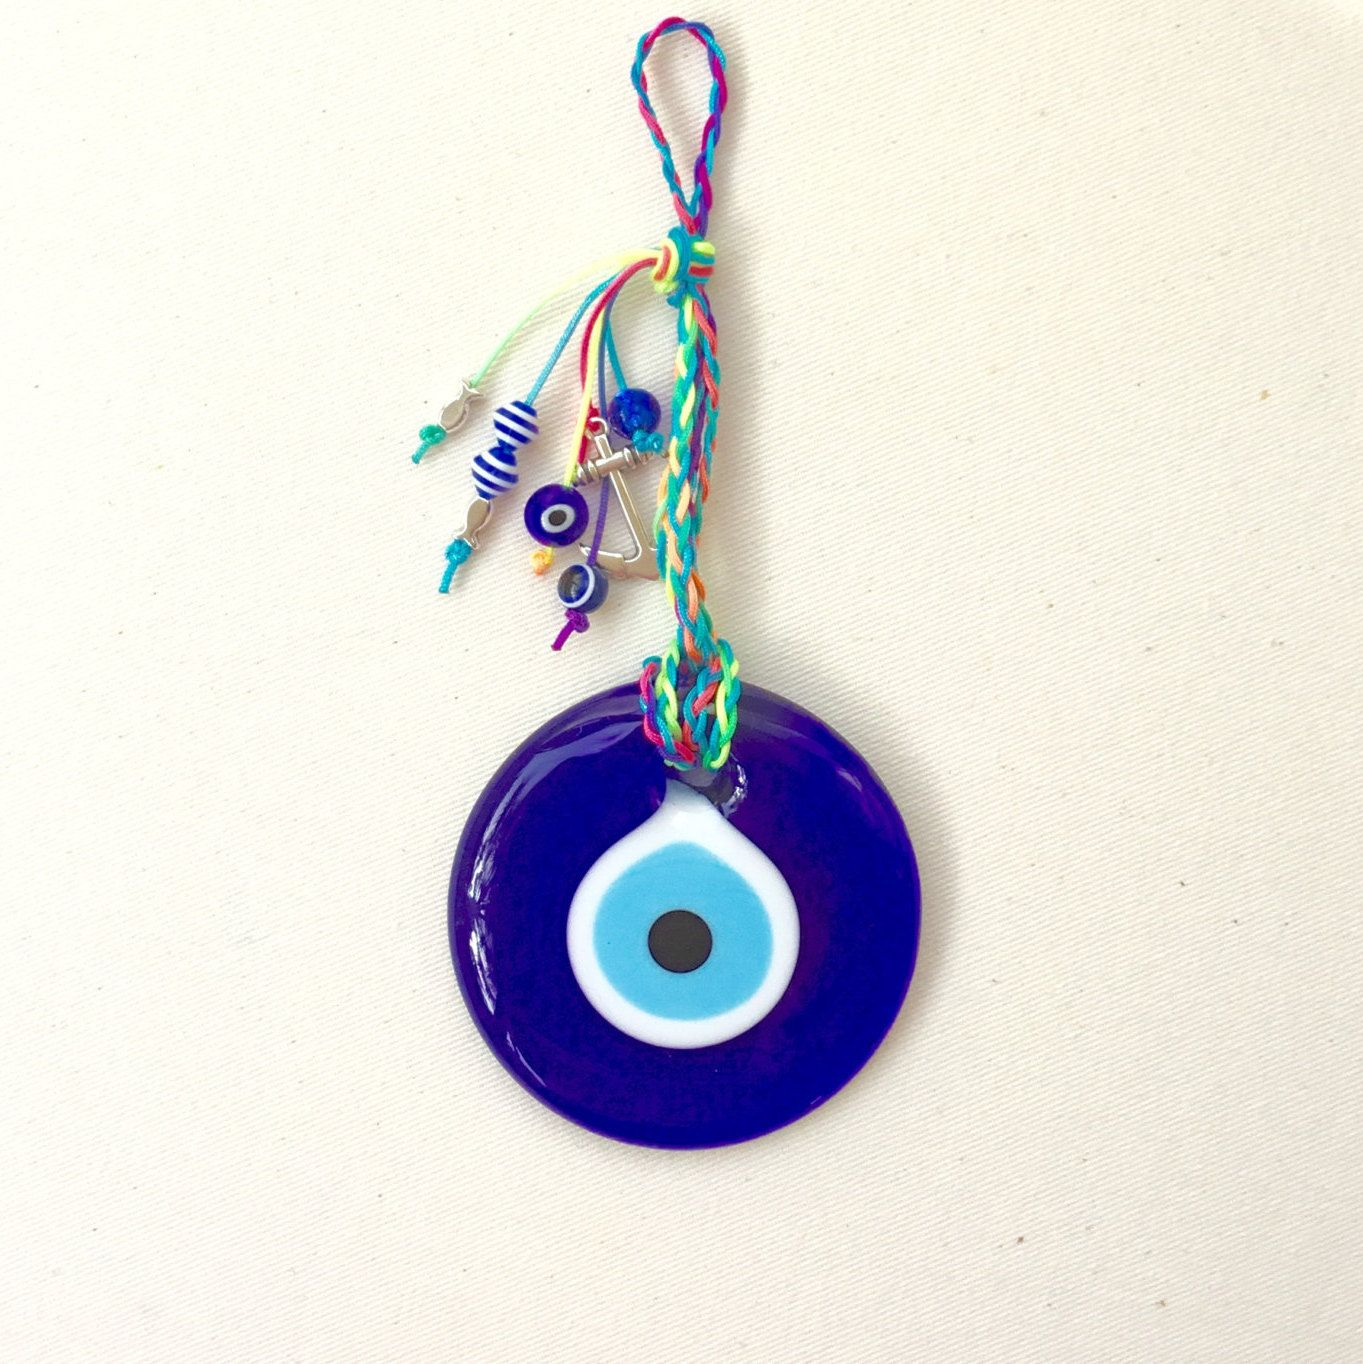 Round evil eye charm good luck charm evil eyes nazar talisman round evil eye charm good luck charm evil eyes nazar talisman mozeypictures Images